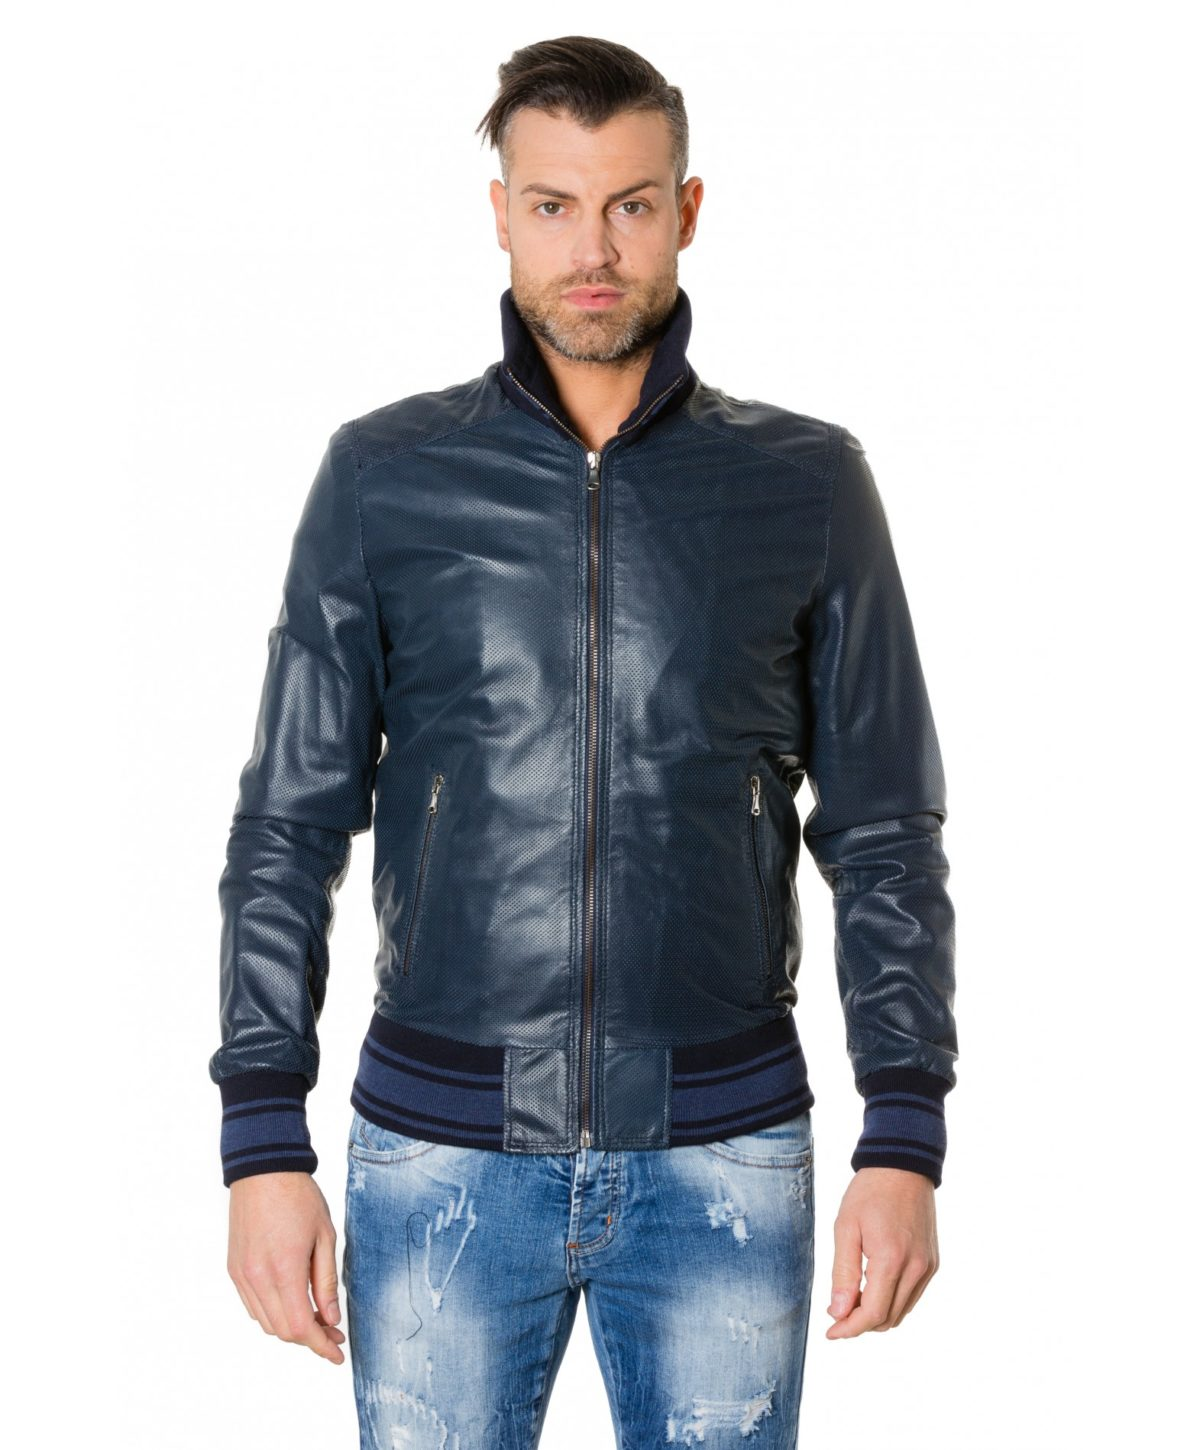 bomber-blue-colour-perforated-leather-jacket-bicoloured-collar